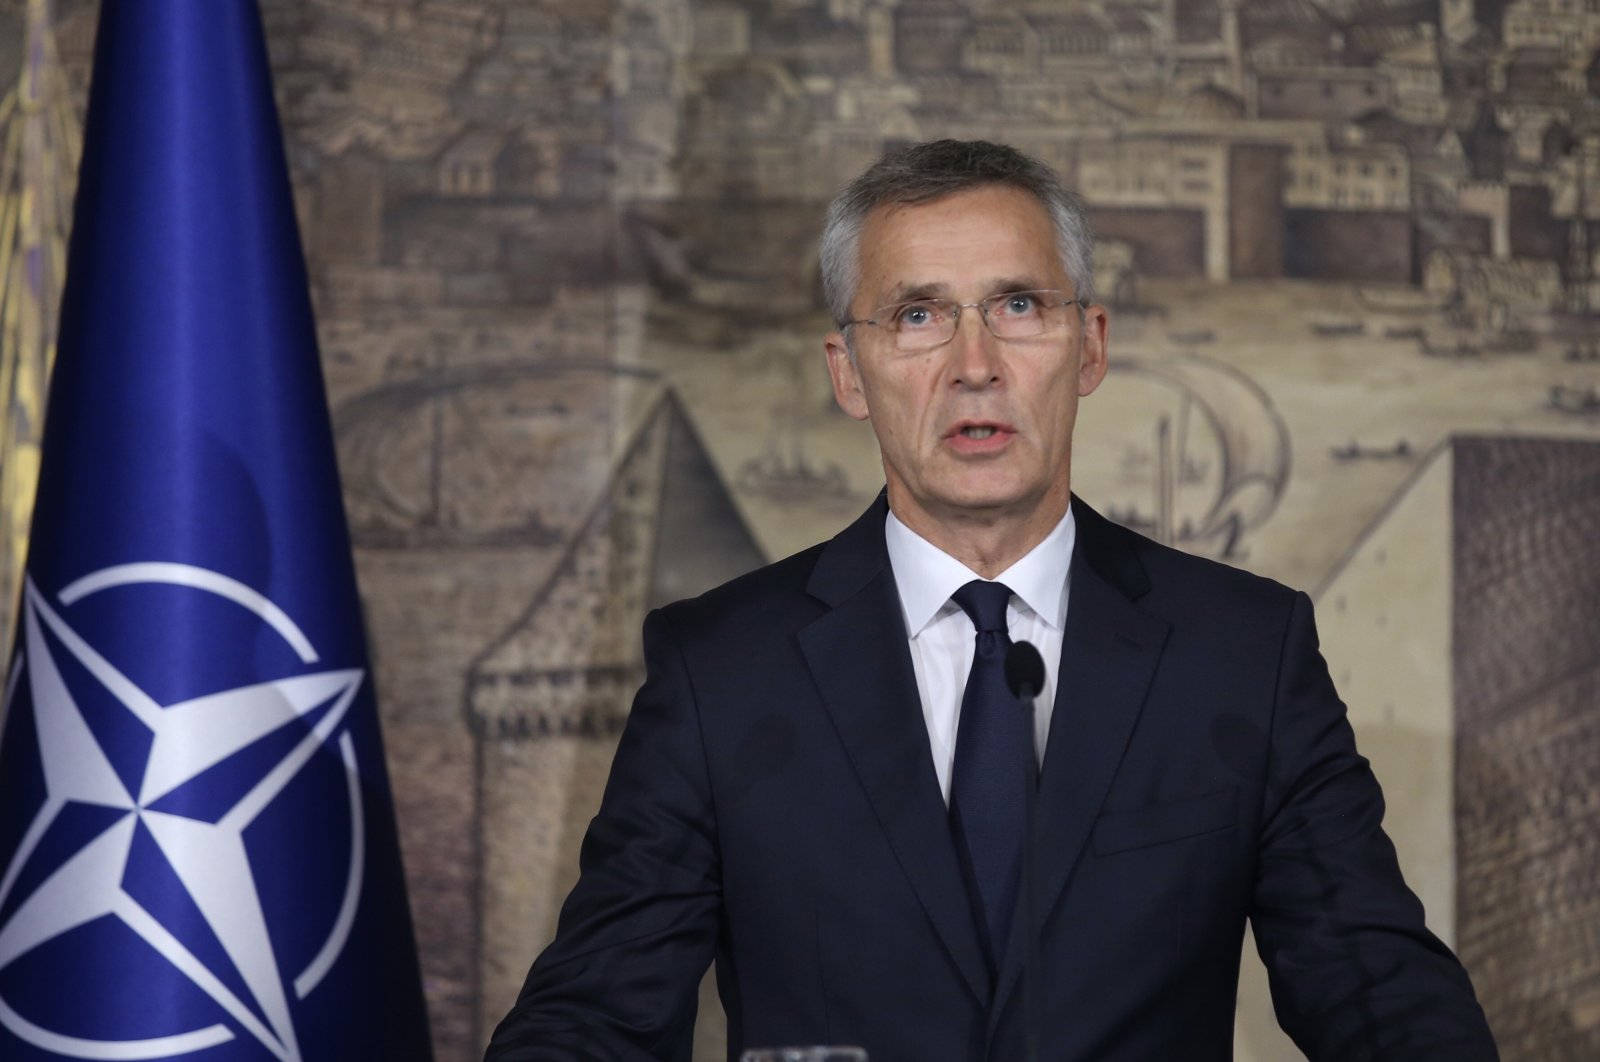 NATO Secretary-General Jens Stoltenberg speaks during a press conference in Istanbul, Turkey, Oct. 11, 2019. (AFP Photo)